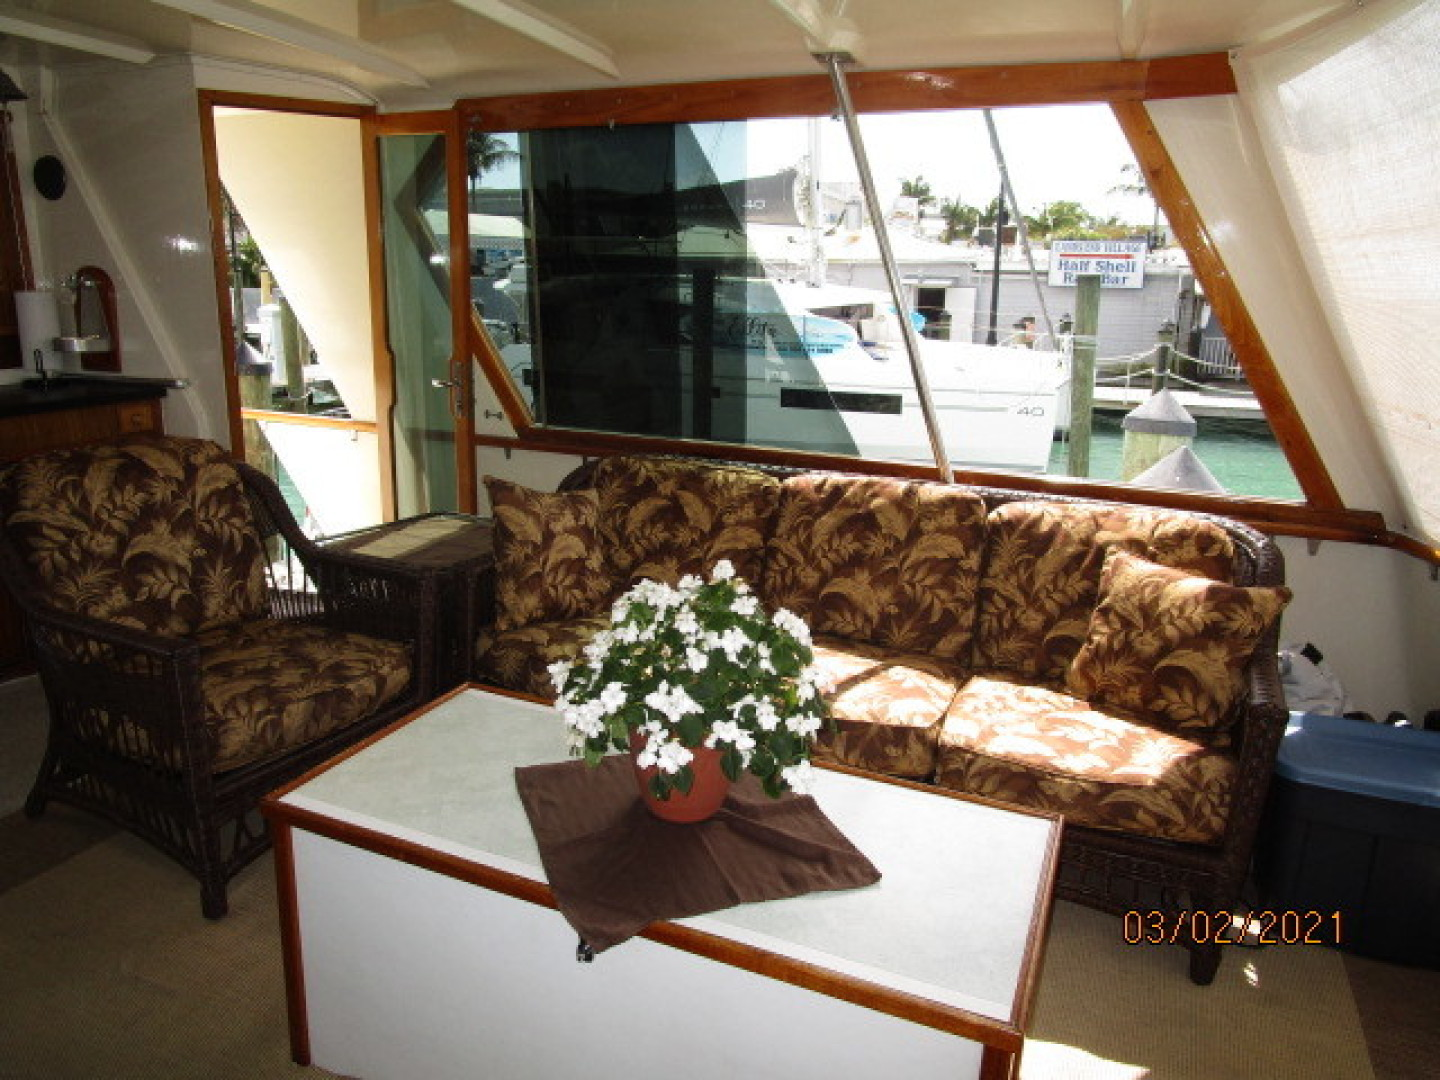 Hatteras-48 1981-Partner Ship Carolina Beach-North Carolina-United States-48 Hatteras sundeck starboard-1629326 | Thumbnail